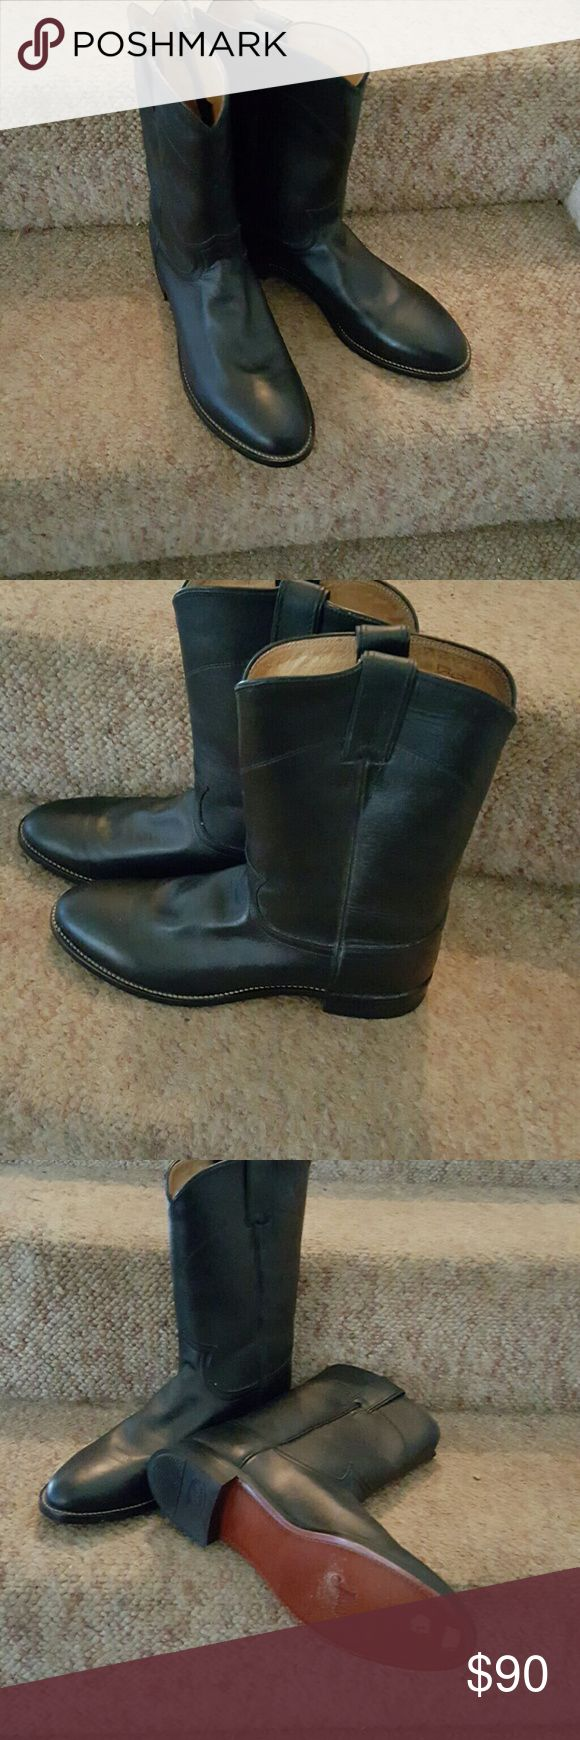 Cowboy boots Black mens justin cowboy boots Size 9 Brand new, never worn Justin Boots Shoes Combat & Moto Boots